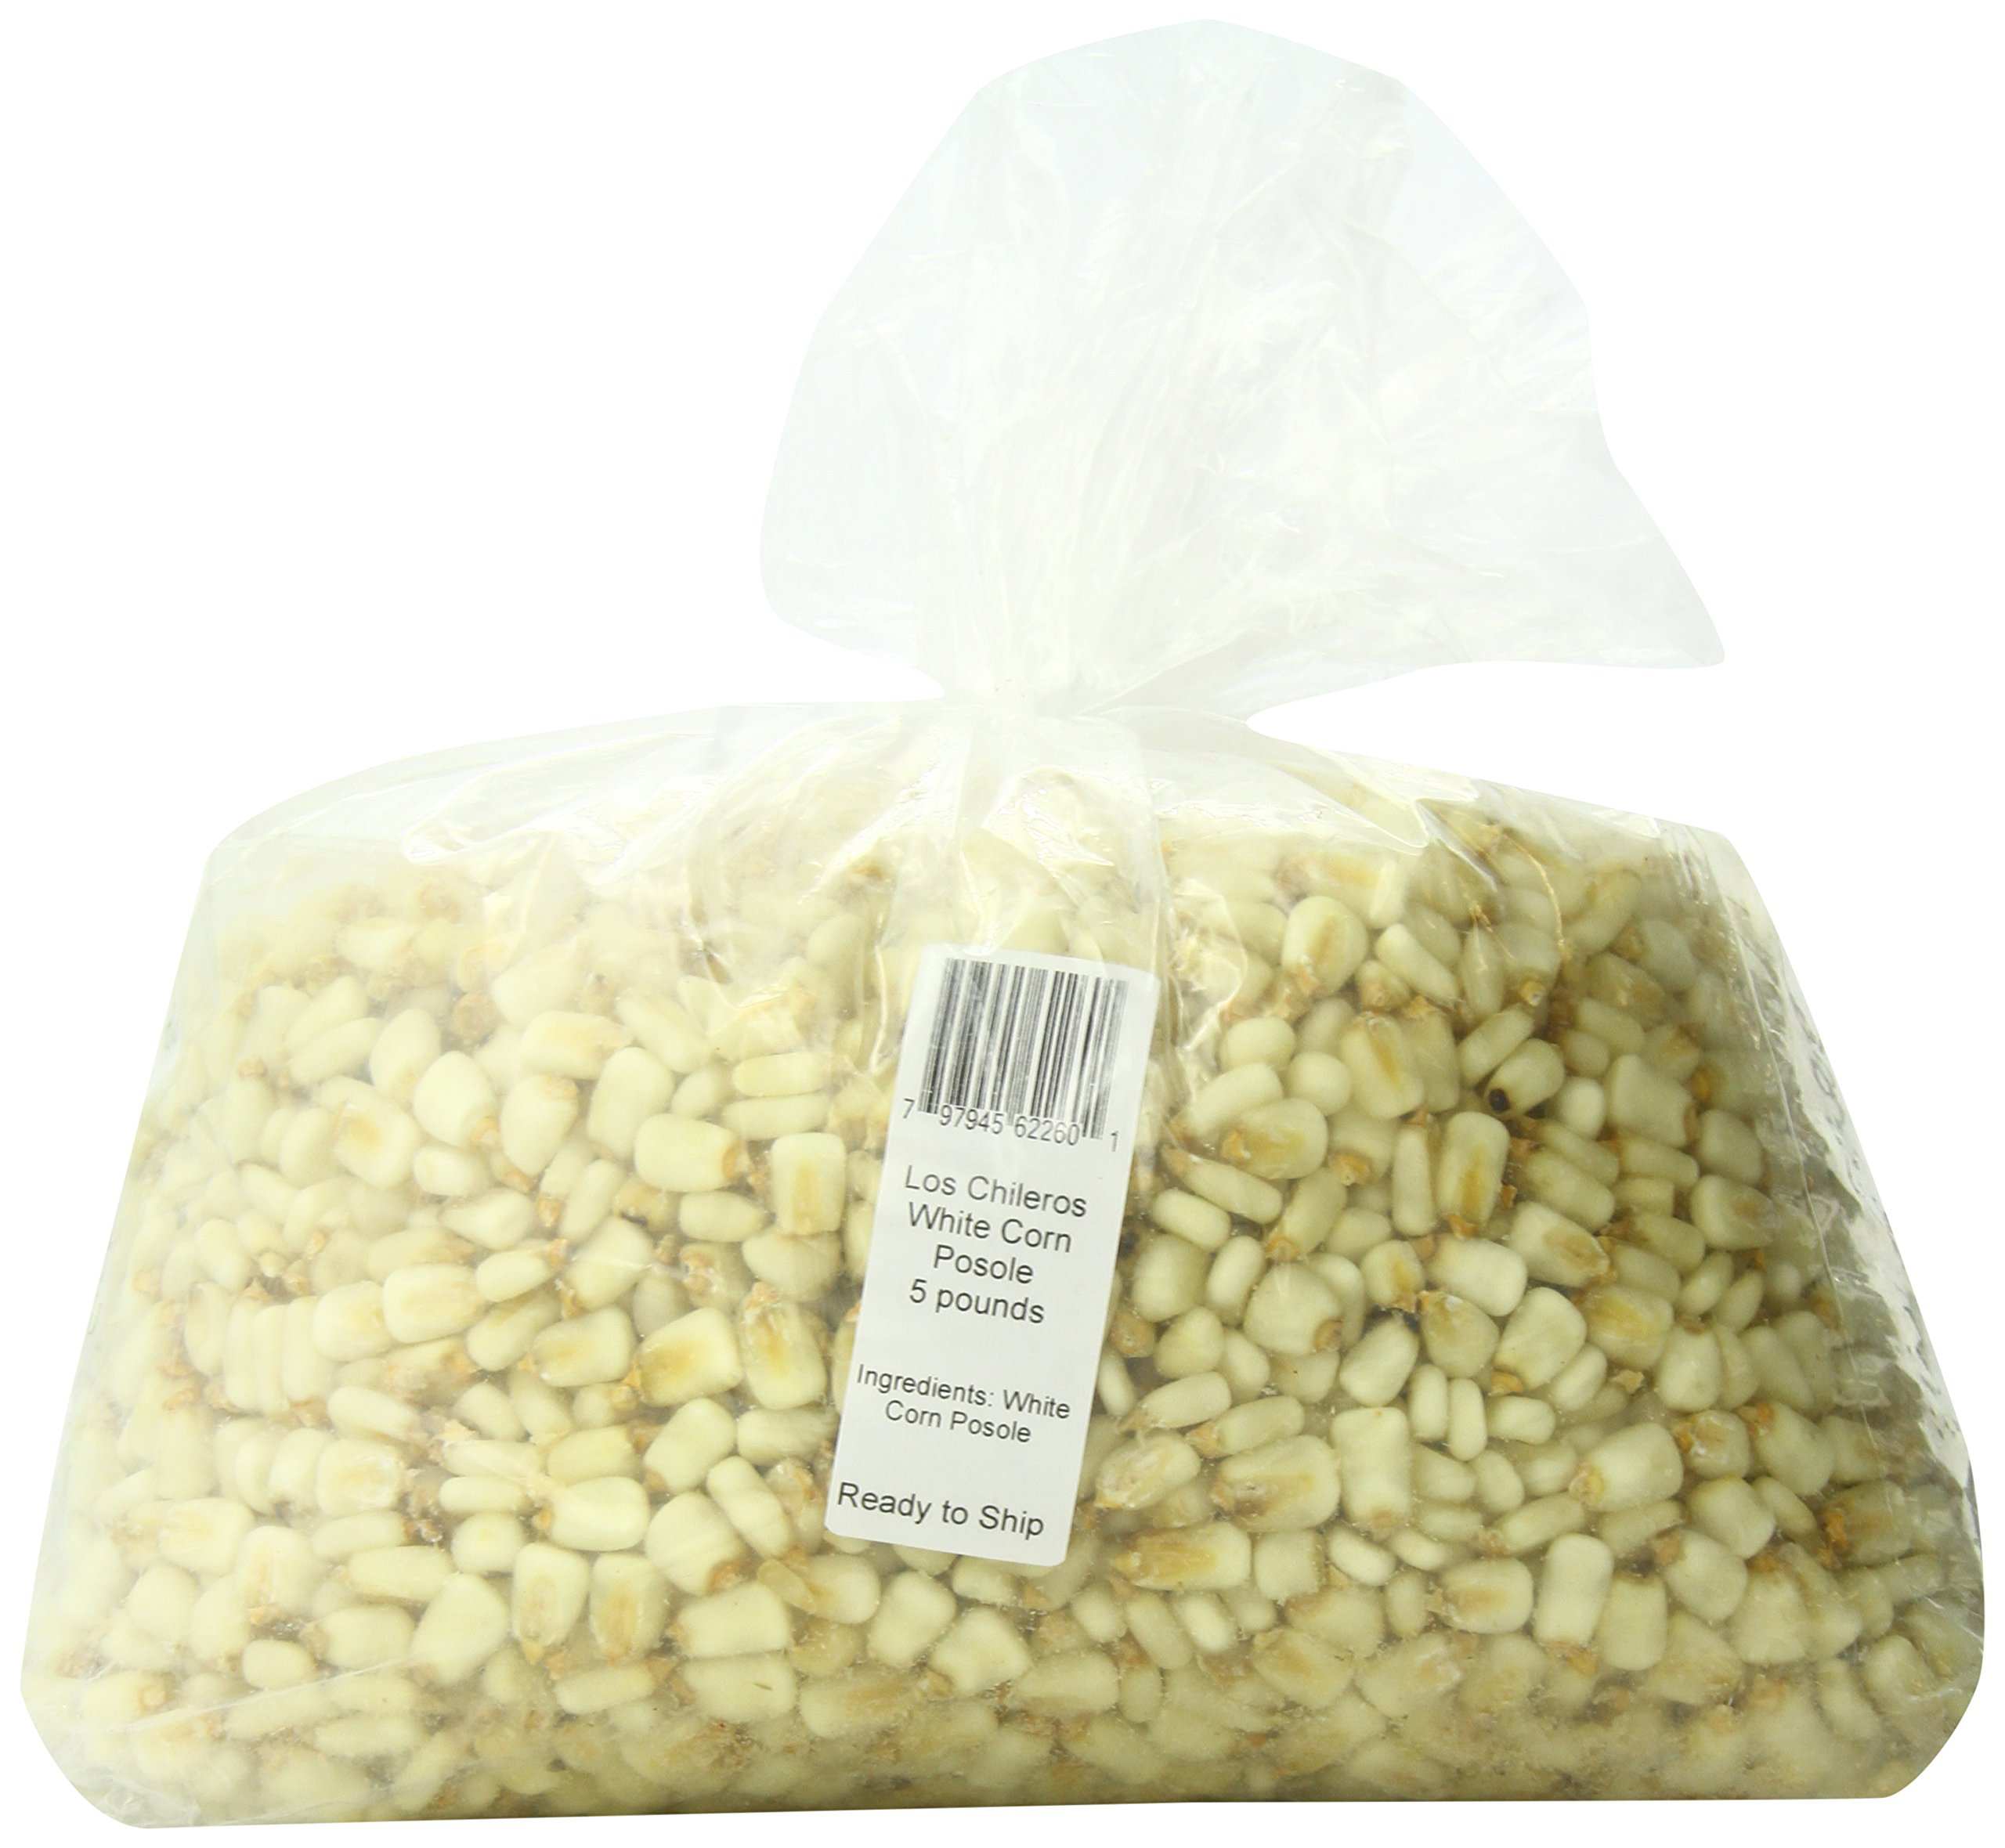 Los Chileros White Corn Posole, 5 Pound